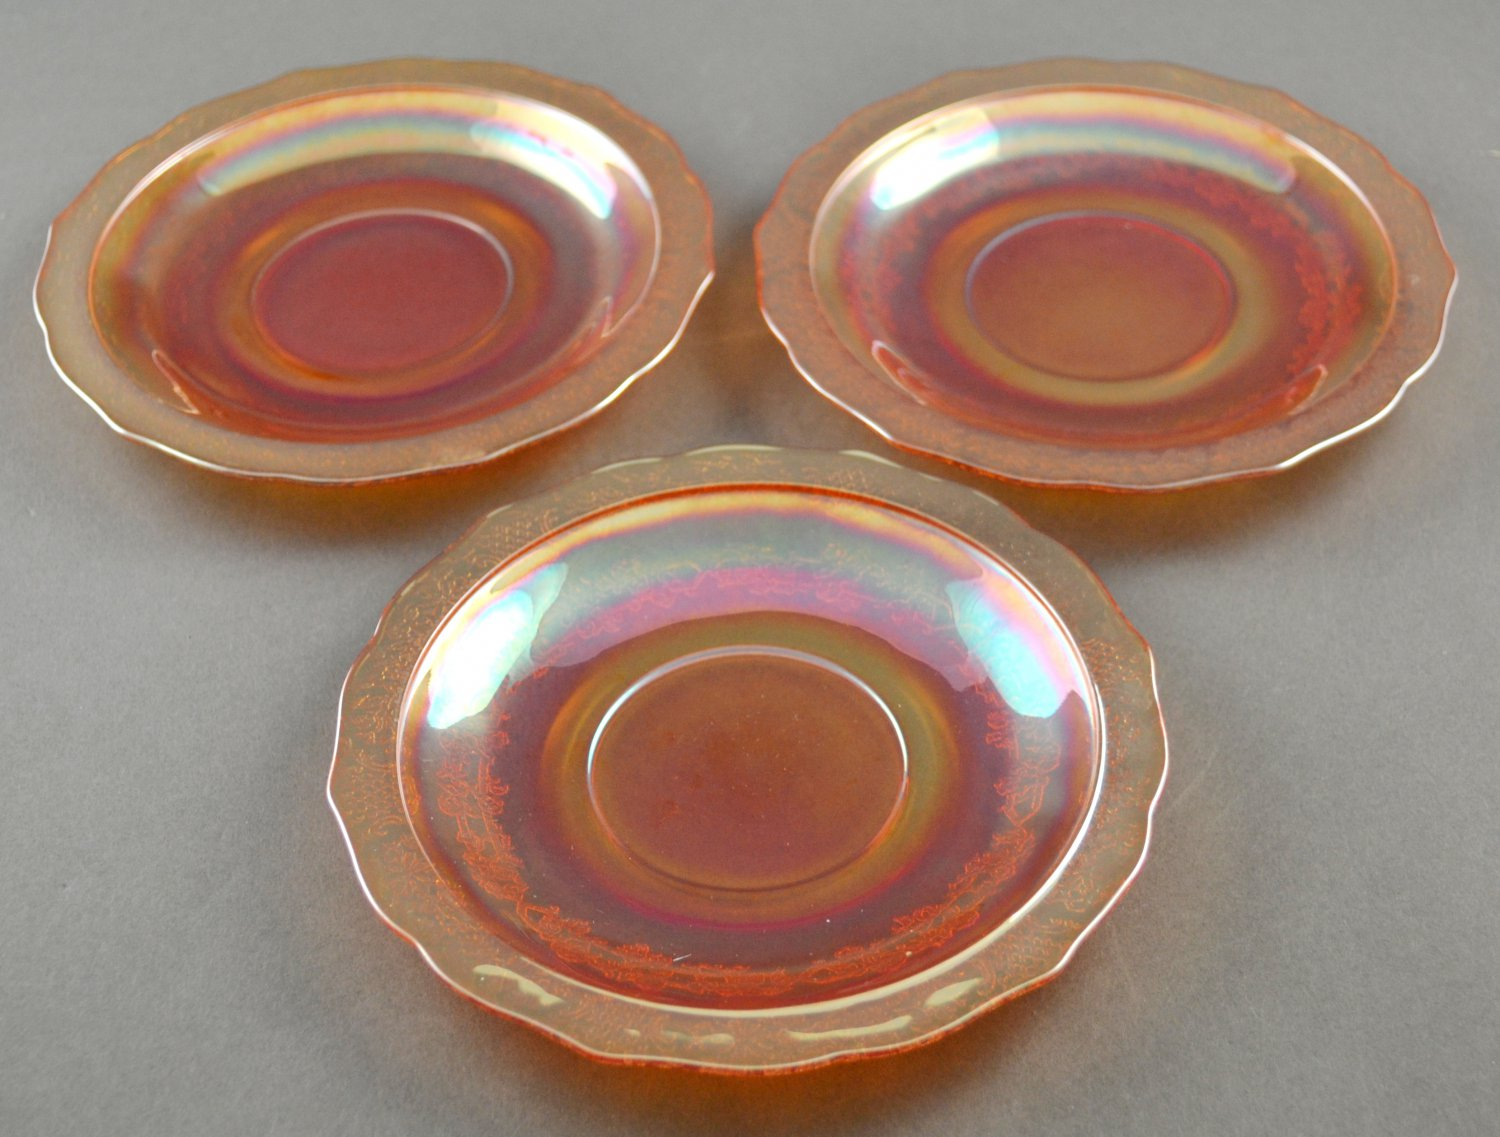 Set of 3 Federal Normandie or Bouquet and Lattice Iridescent Saucers